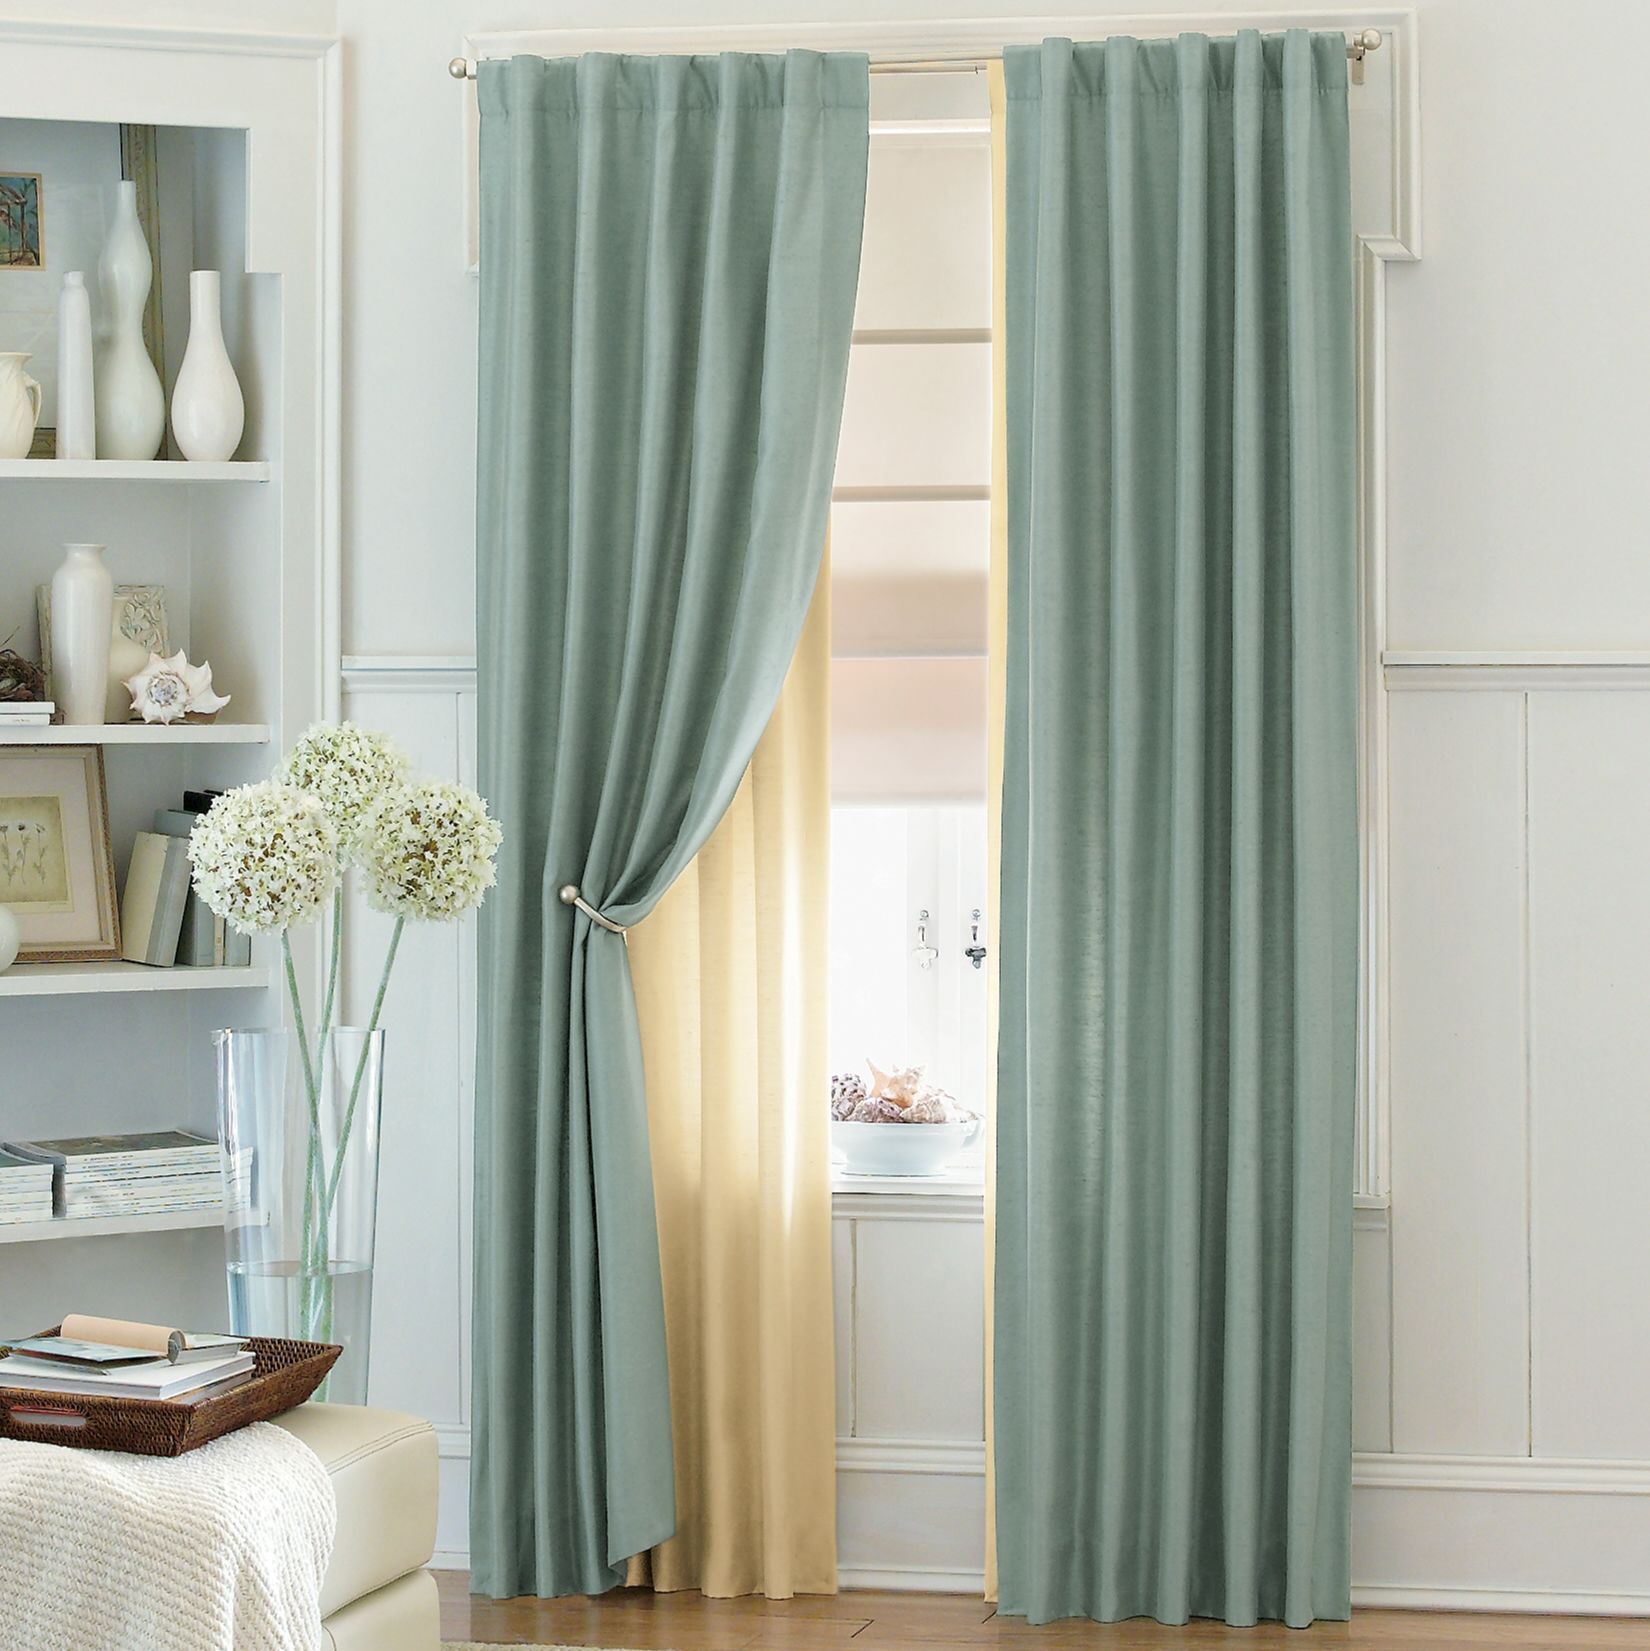 Bedroom Decor Curtains awe-inspiring grey double bedroom curtains with single white